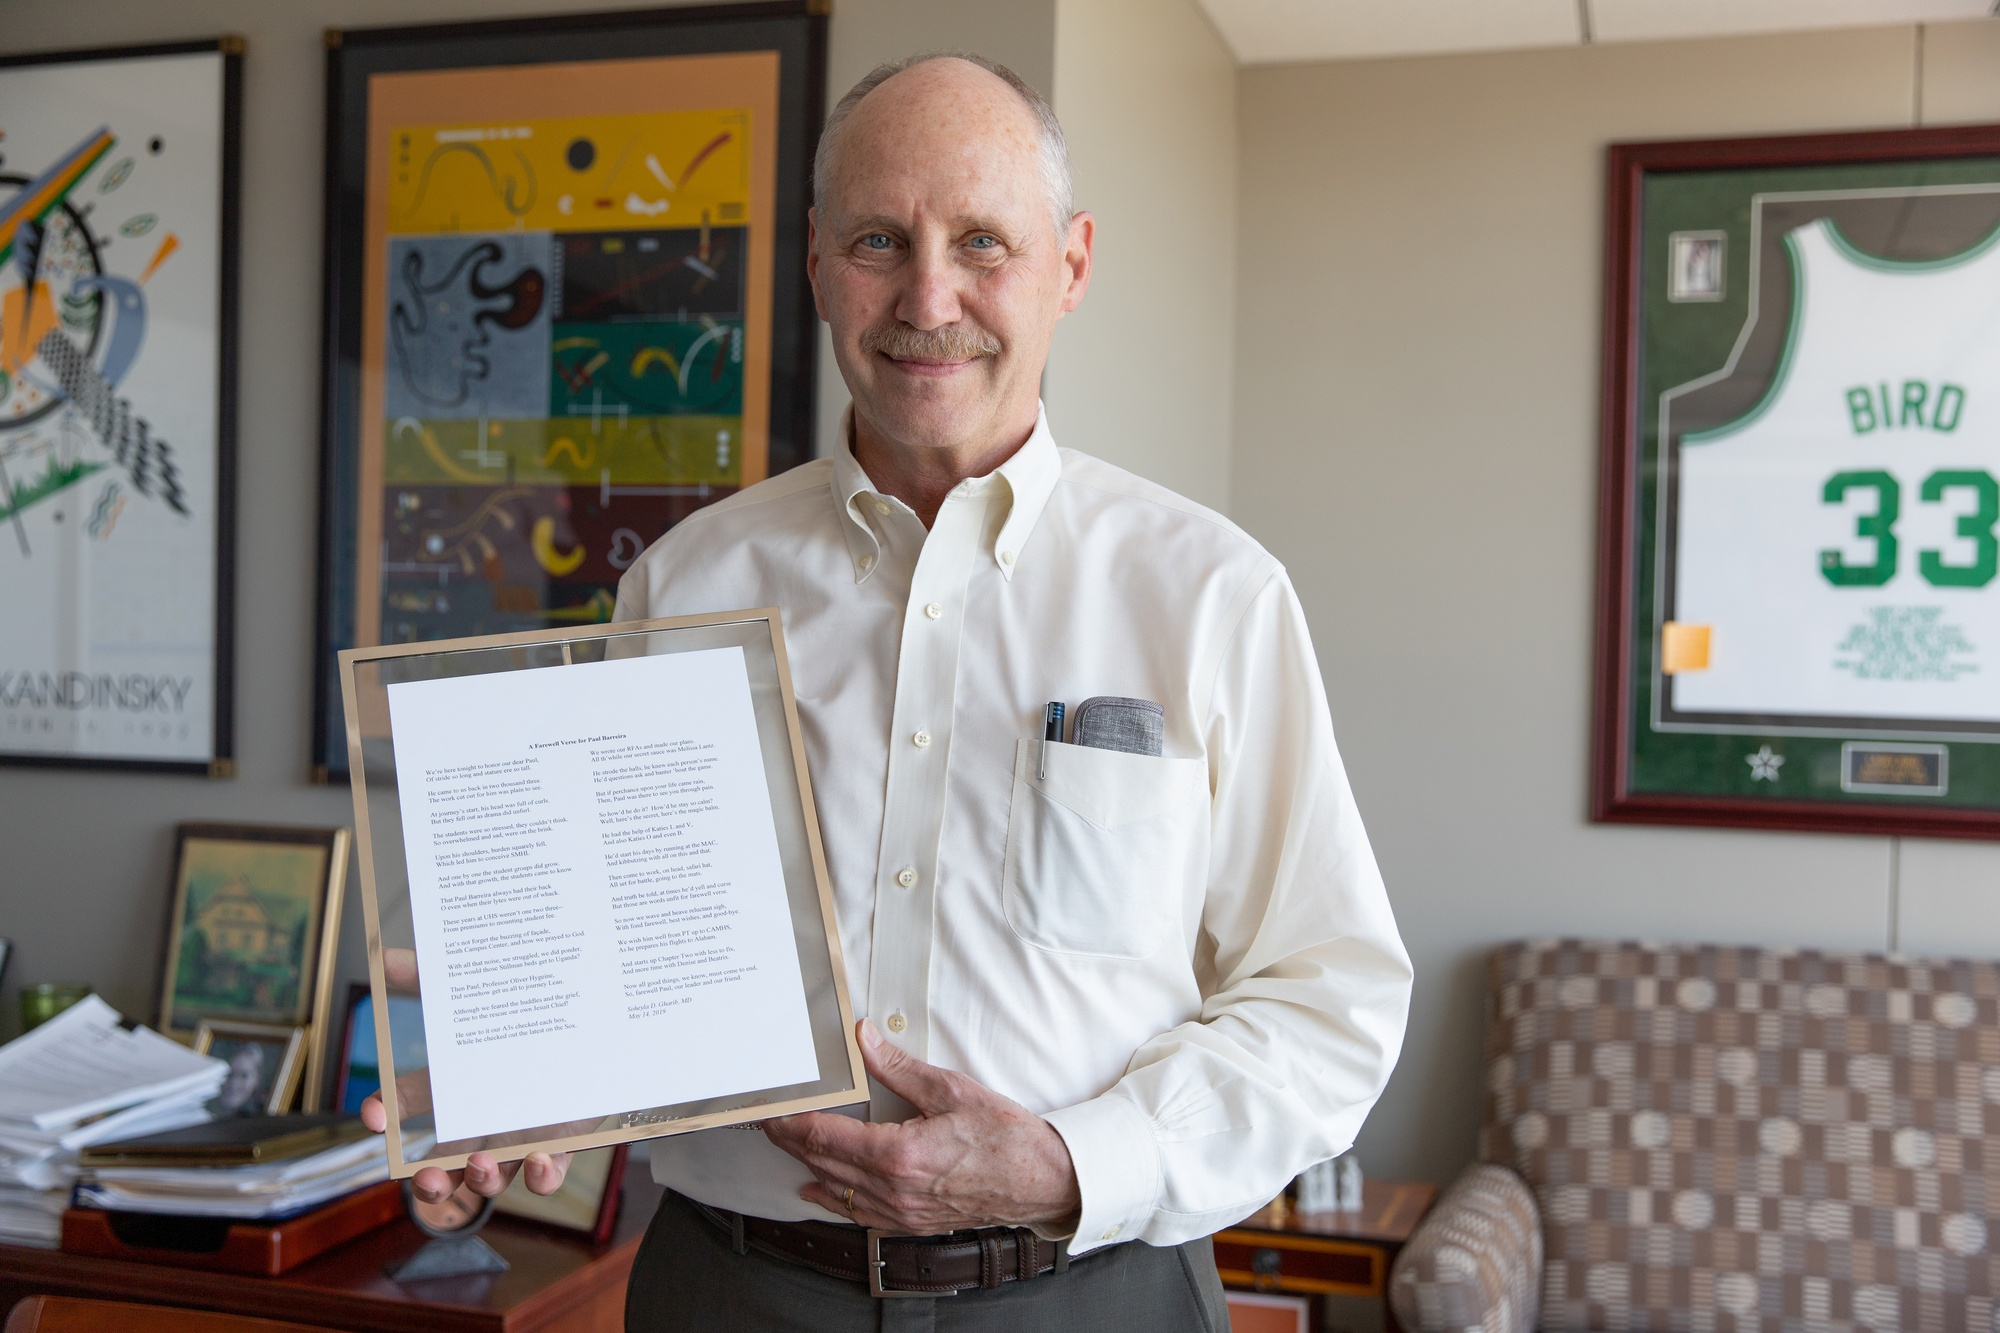 In January, HUHS Director Paul J. Barreira announced his plans to retire at the end of the academic year. Barreira poses with a farewell poem.